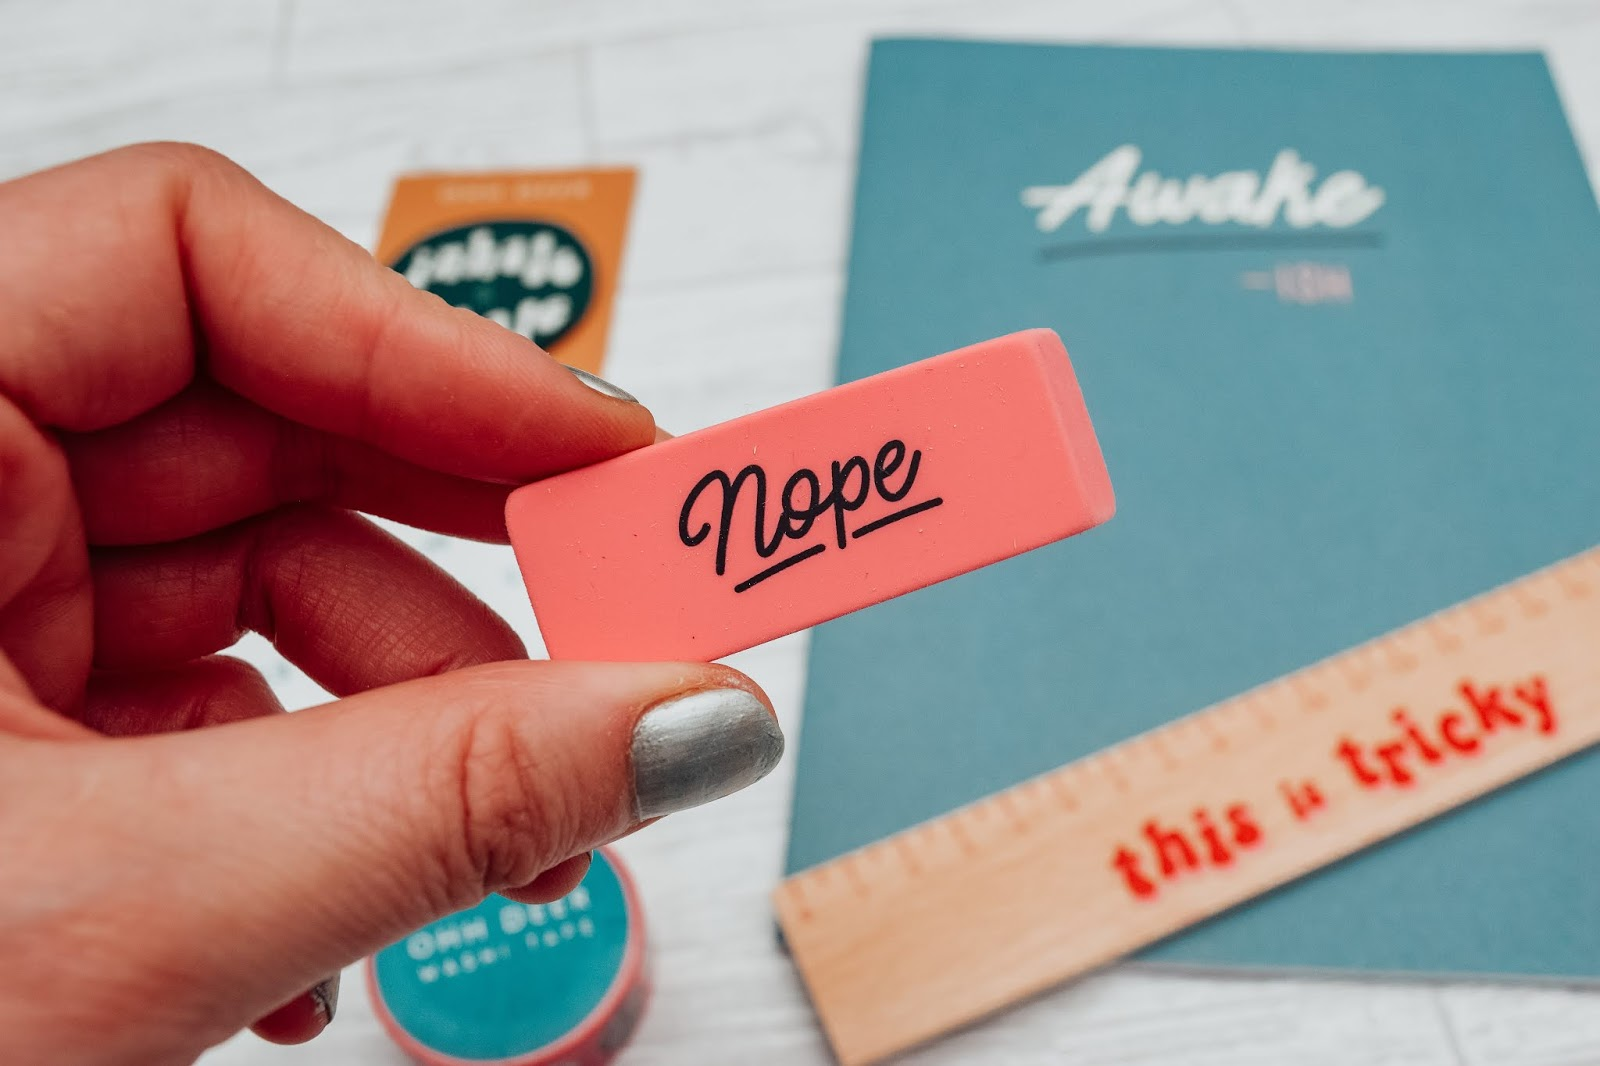 A pink eraser with the word nope printed on it.